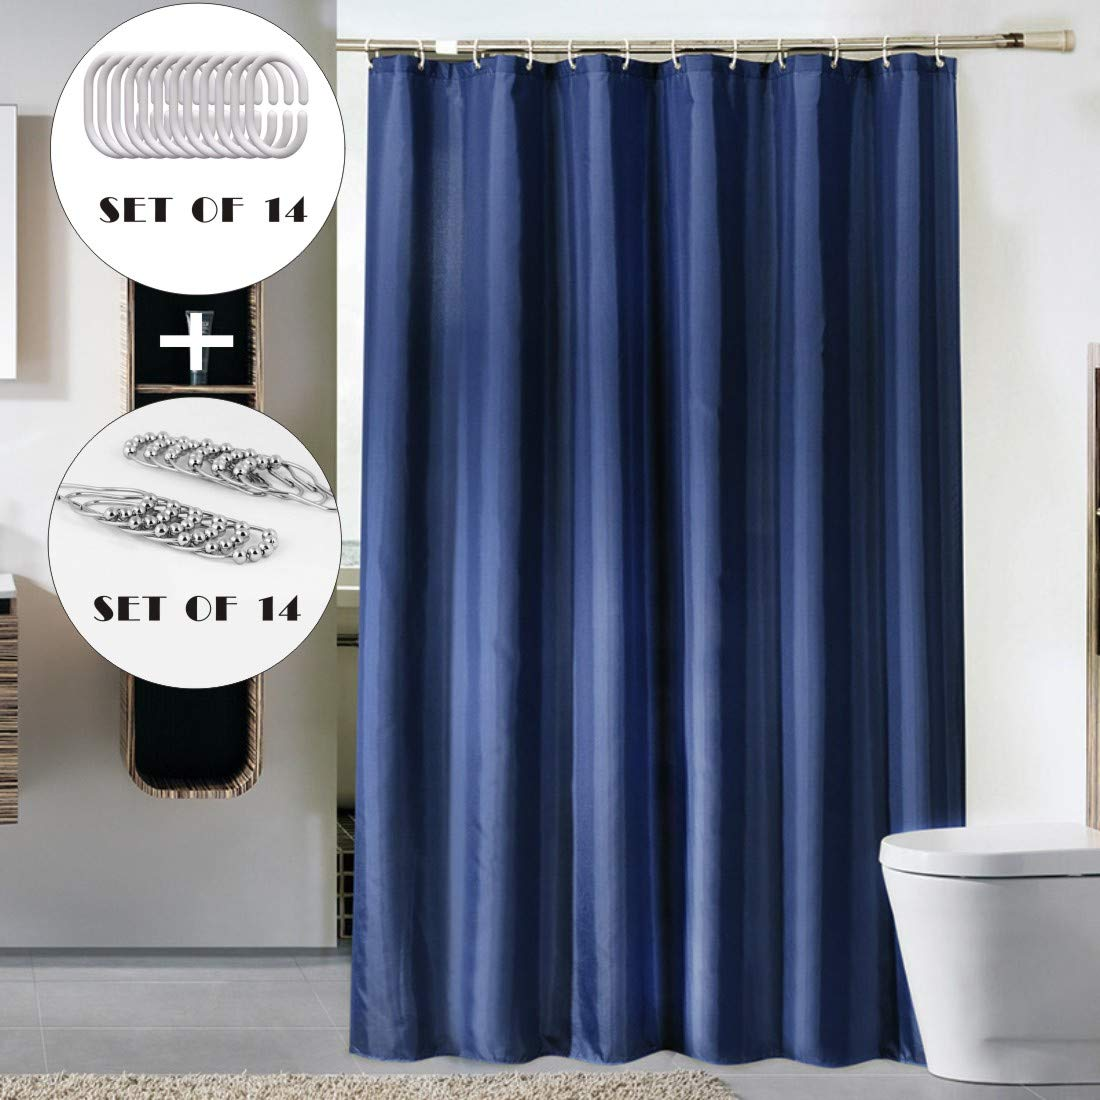 CDGroup Mildew Resistant Shower Curtain Waterproof Bathroom Eco-Friendly Shower Curtain Liner Come with 2 Set of Hooks Bathroom Home Office Holiday Wall Decoration Navy Blue in 47 X 71